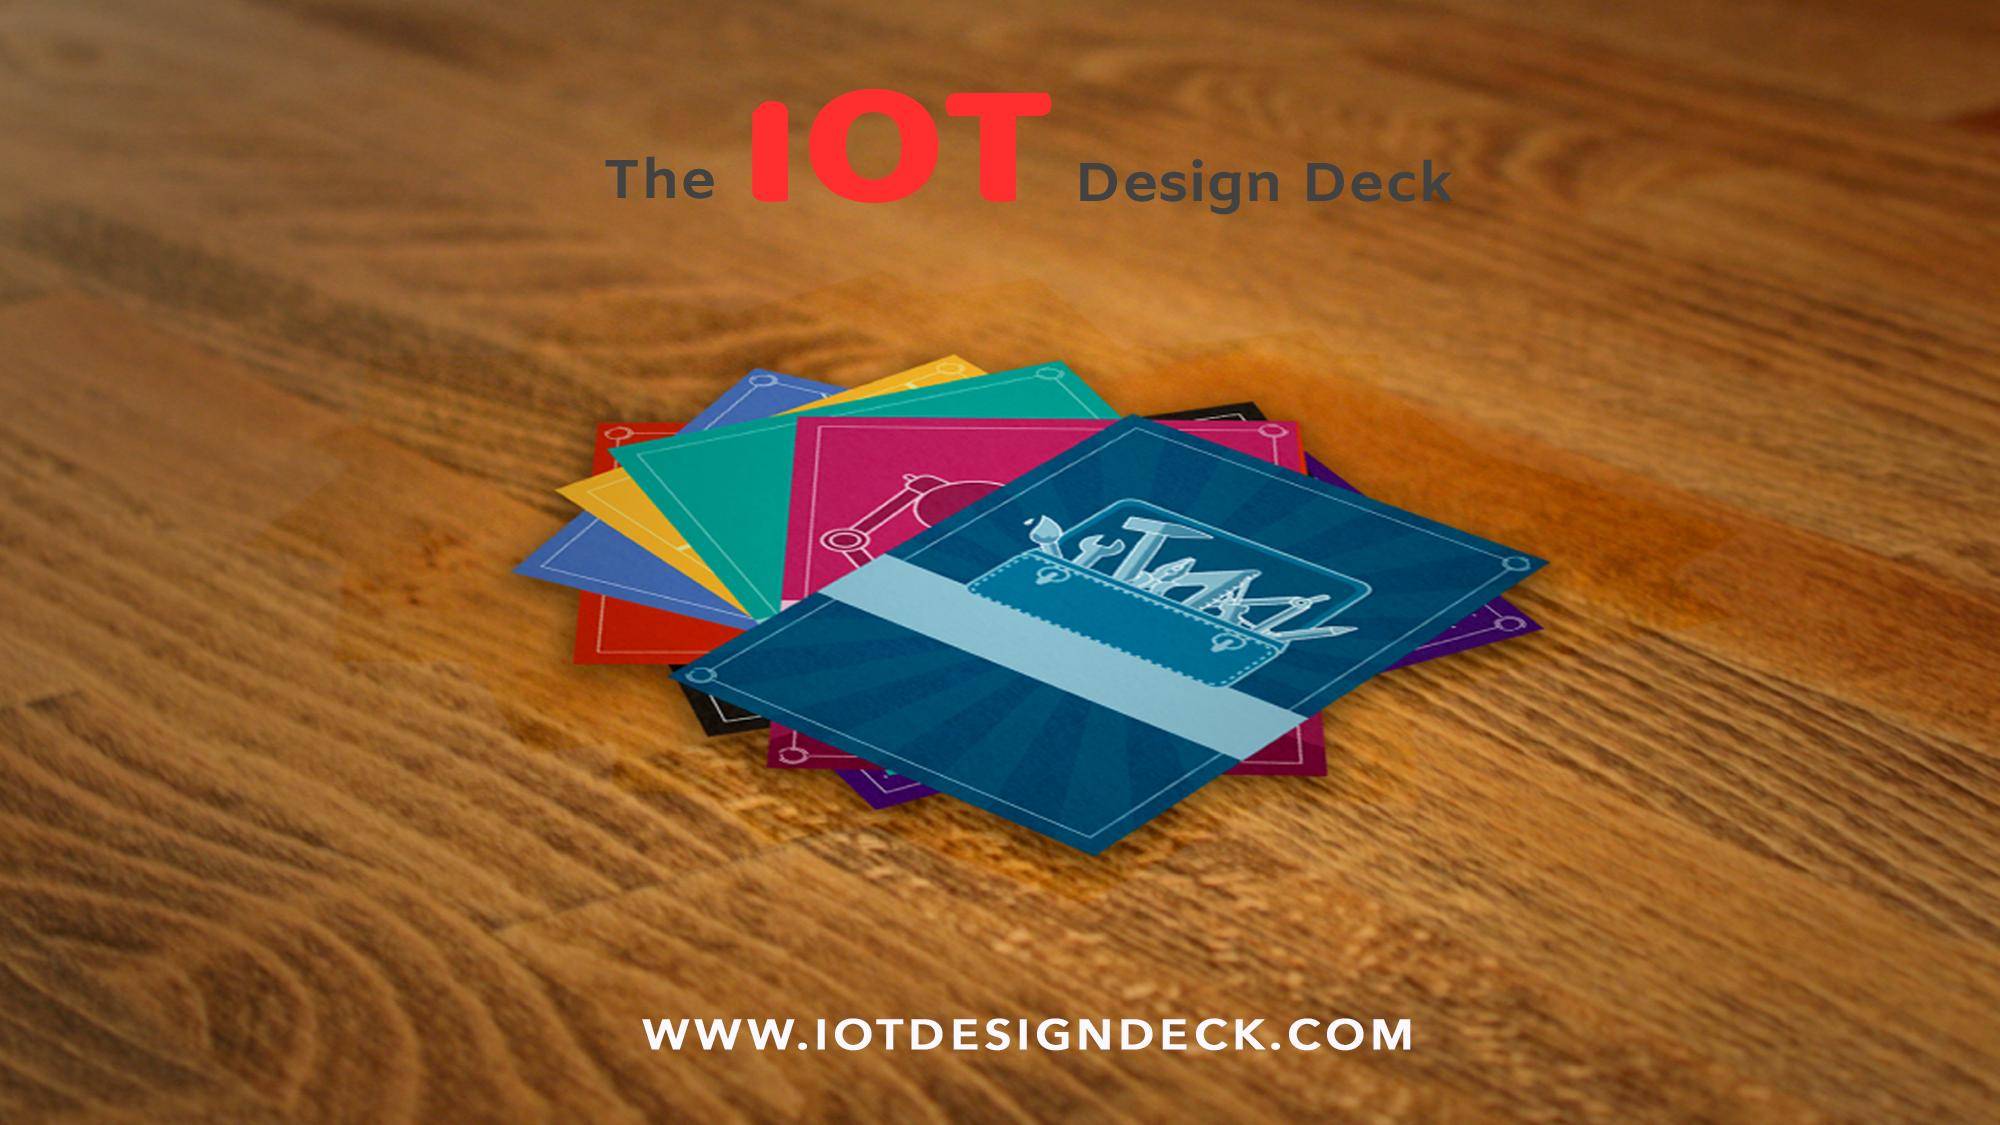 IoT Design Deck - A card game to design the Internet of Things